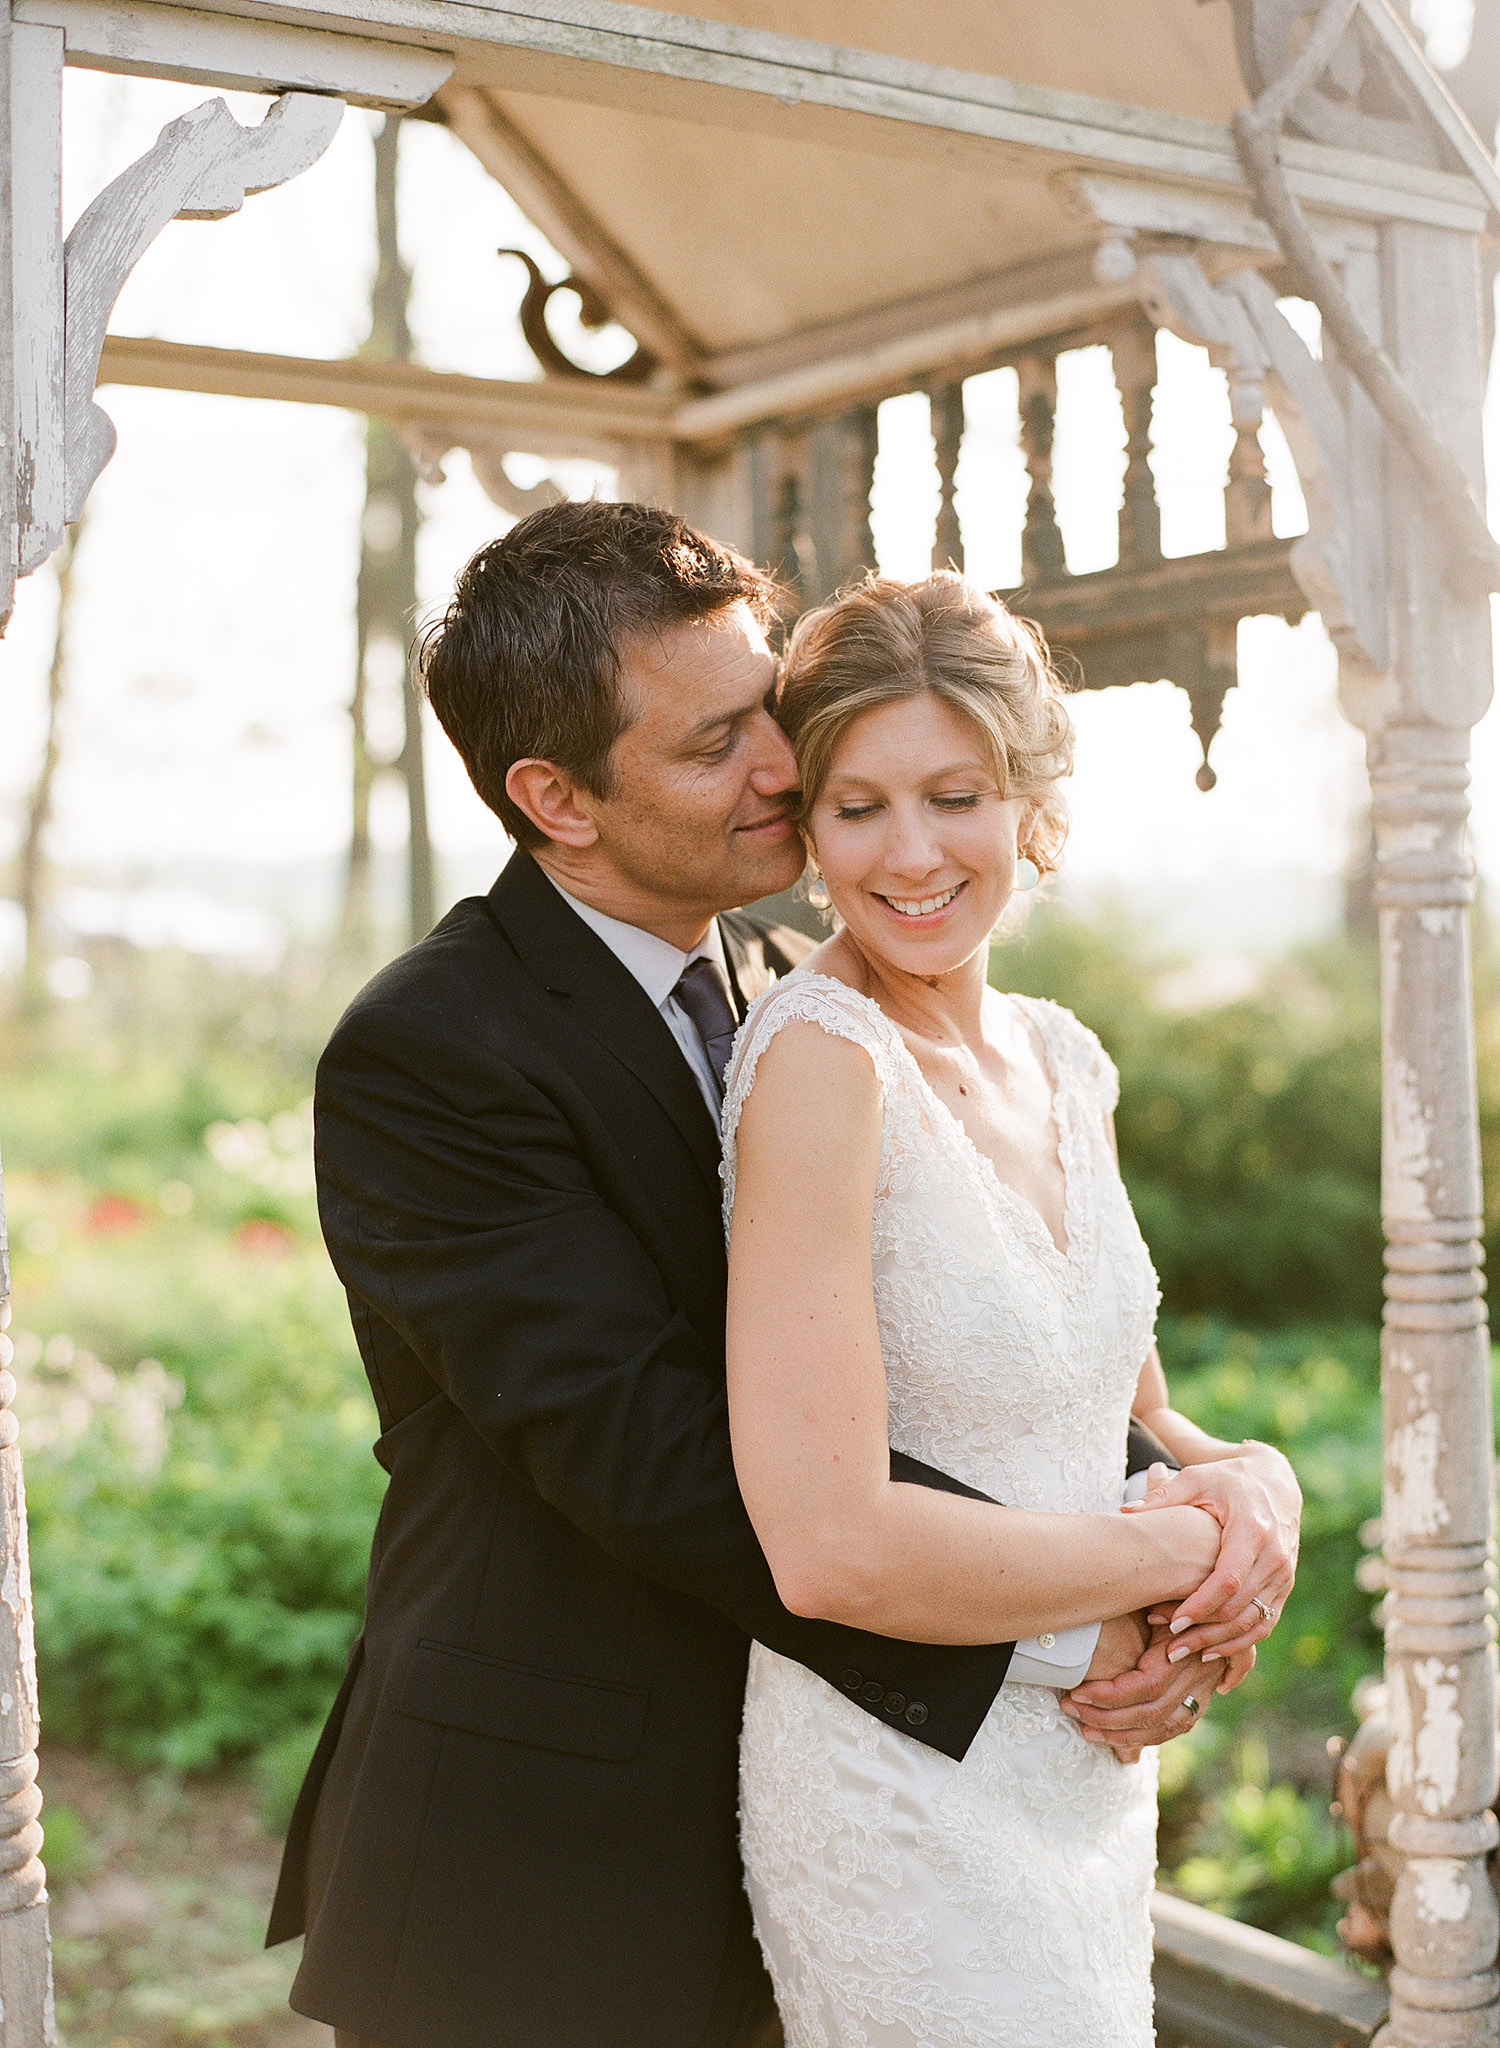 bride and groom kiss in the gazebo at  this springtime wedding at Northwind Perennial gardens - a wisconsin wedding venue - as a film wedding photographer Lexia Frank photographs this destination wedding on film